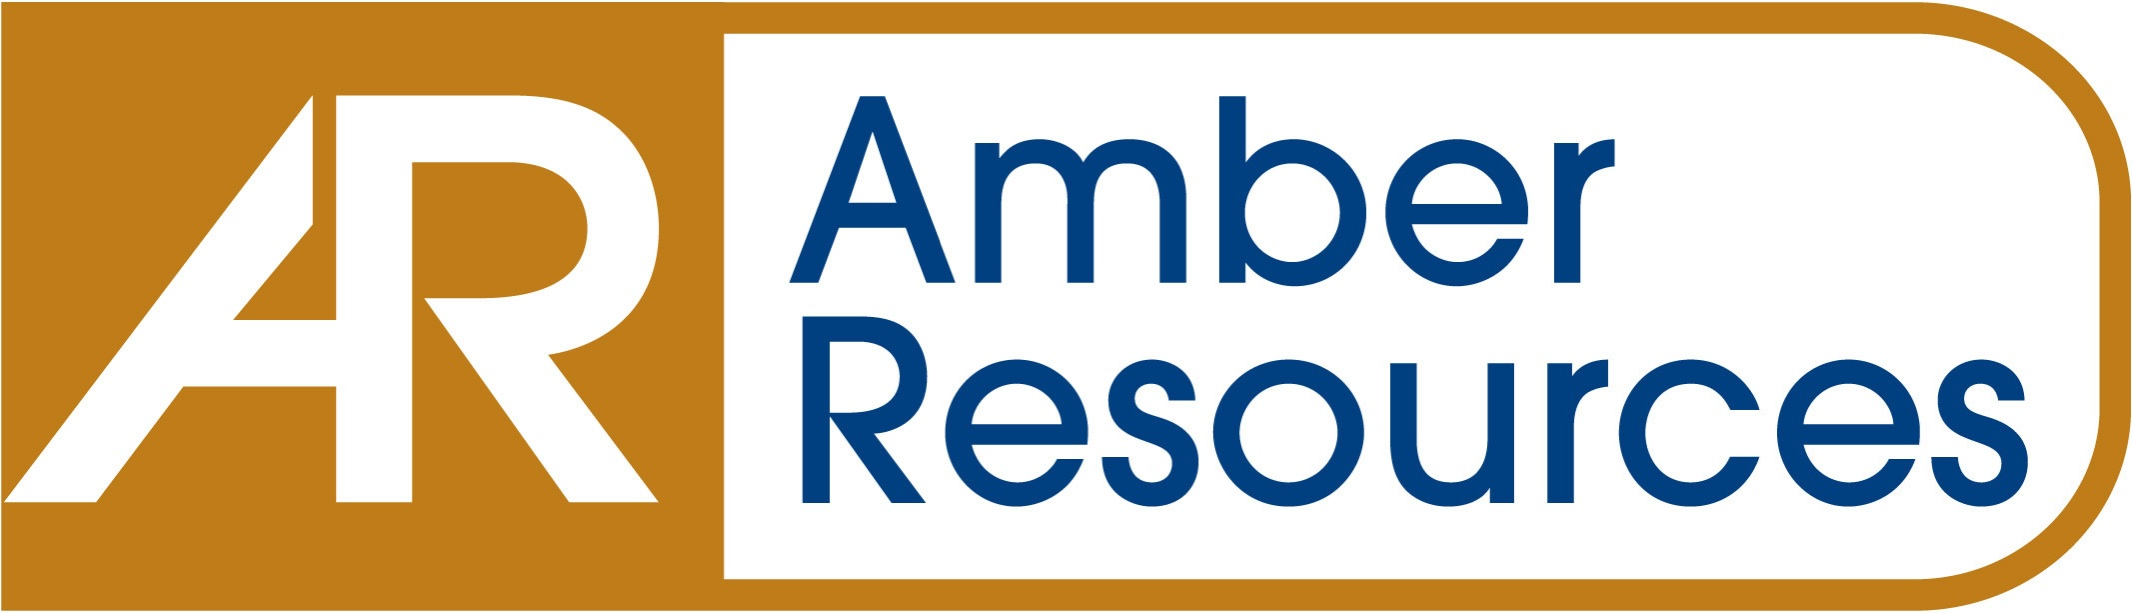 911. Amber Resources